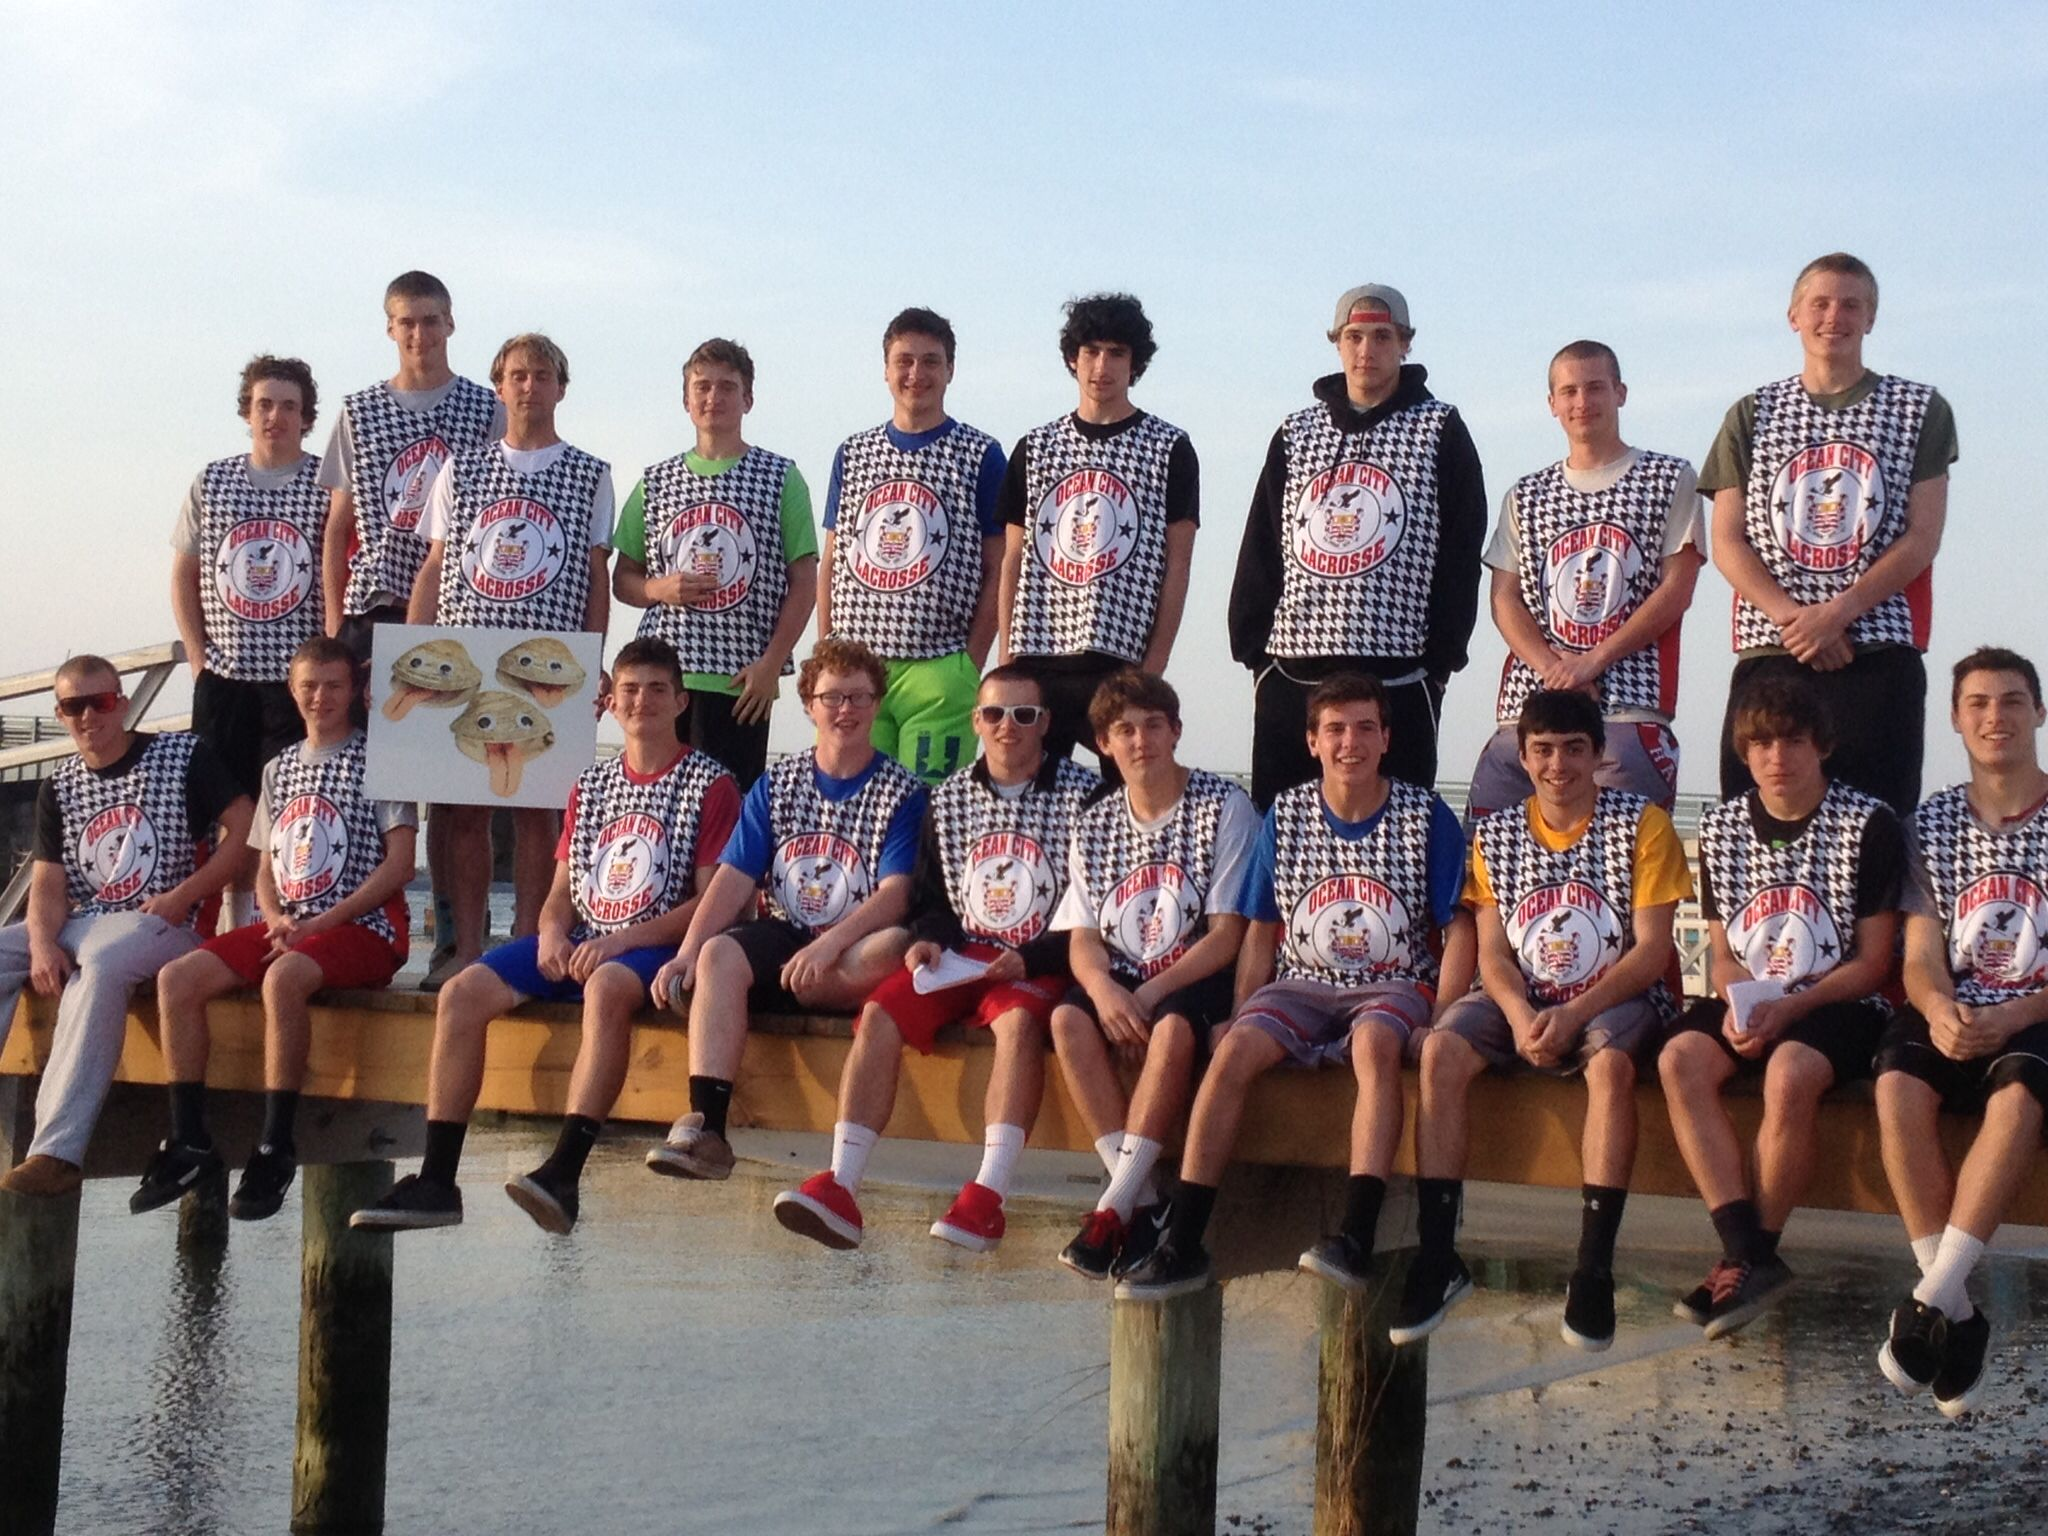 OCHS Varsity Team 2014 Season Lacrosse boys, School boy